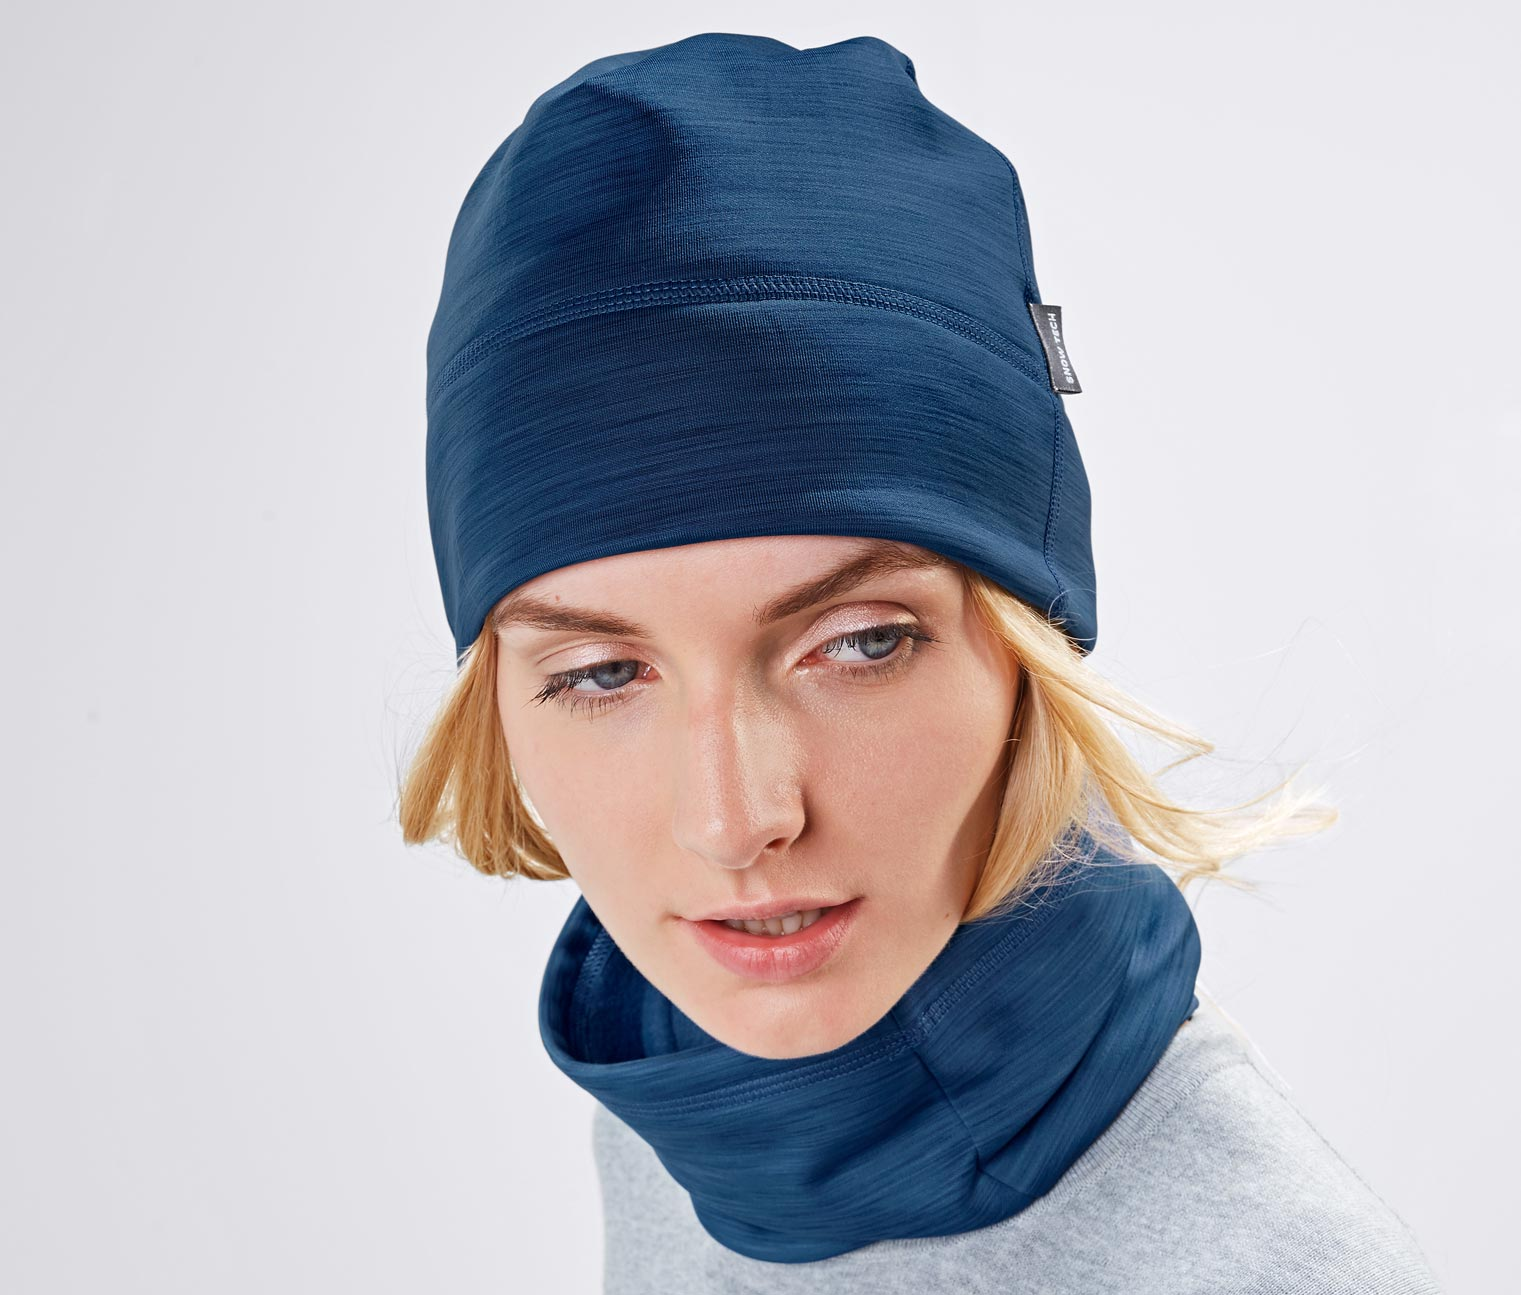 Women's Thermal Hat, Blue